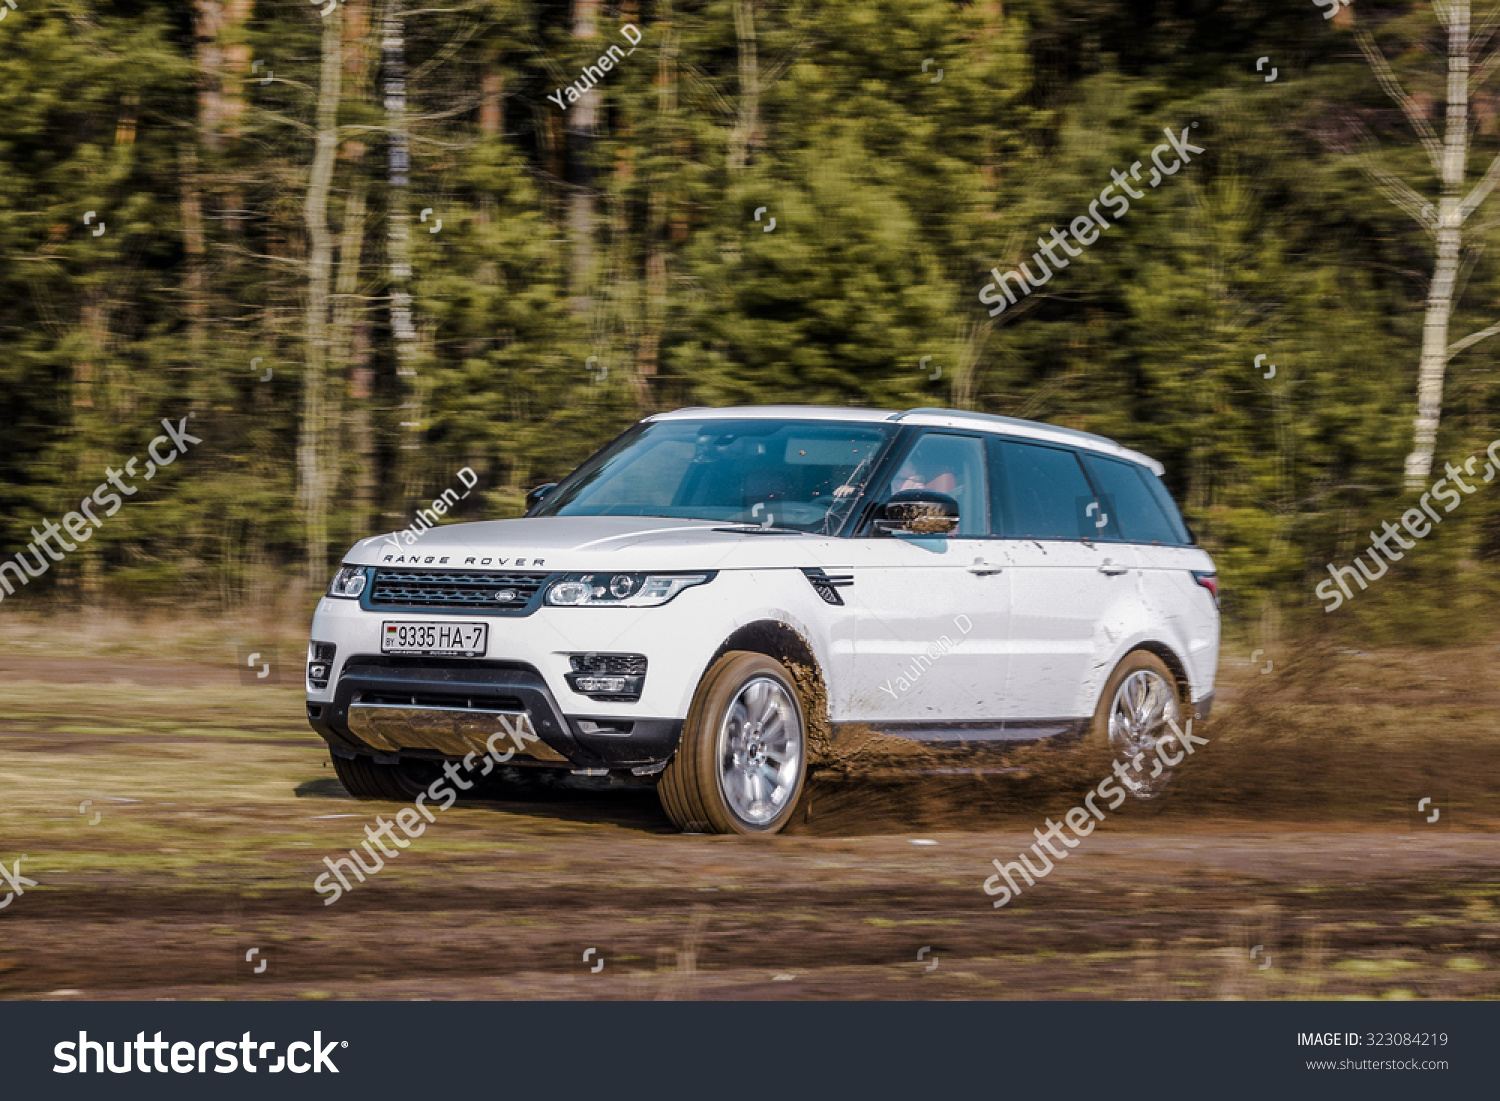 MINSK BELARUS APRIL 6 2014 2015 model year Range Rover Sport 3.0 Supercharged at the test-drive British sport SUV is powered by 3.0 liter V6 340 hp & 450 Nm